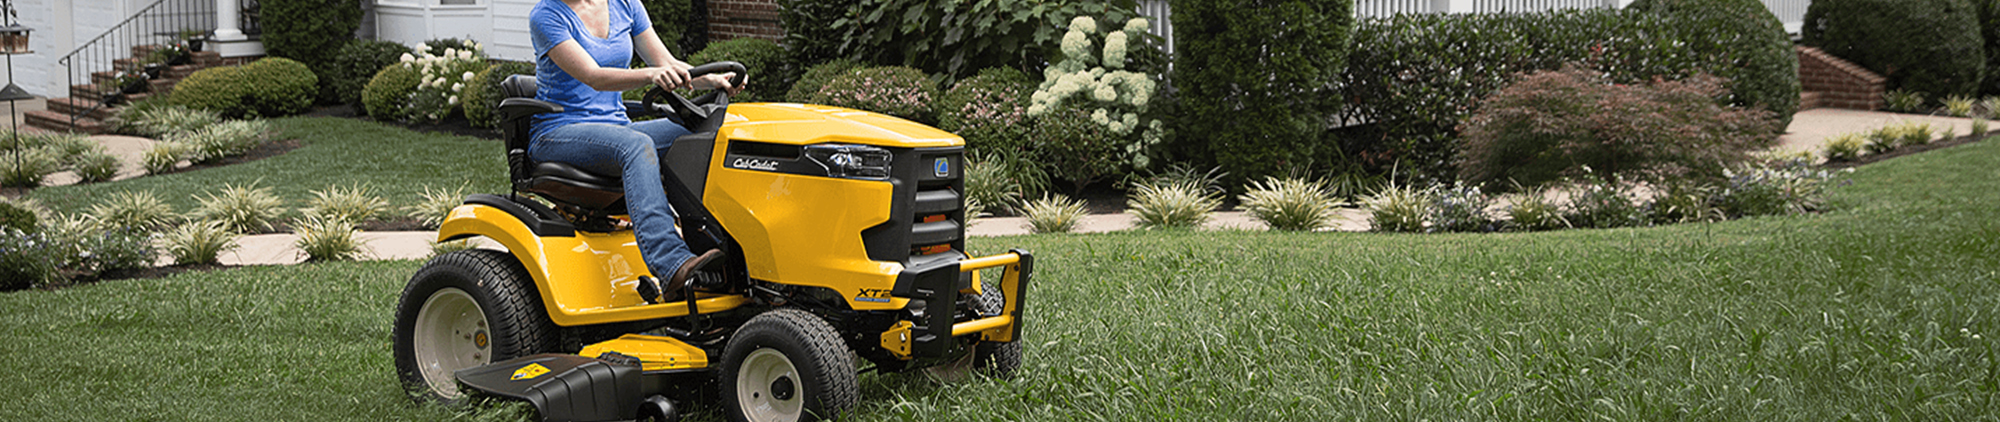 Cub Cadet Dealer Showroom | Sievers Equipment Co  | Your Authorized